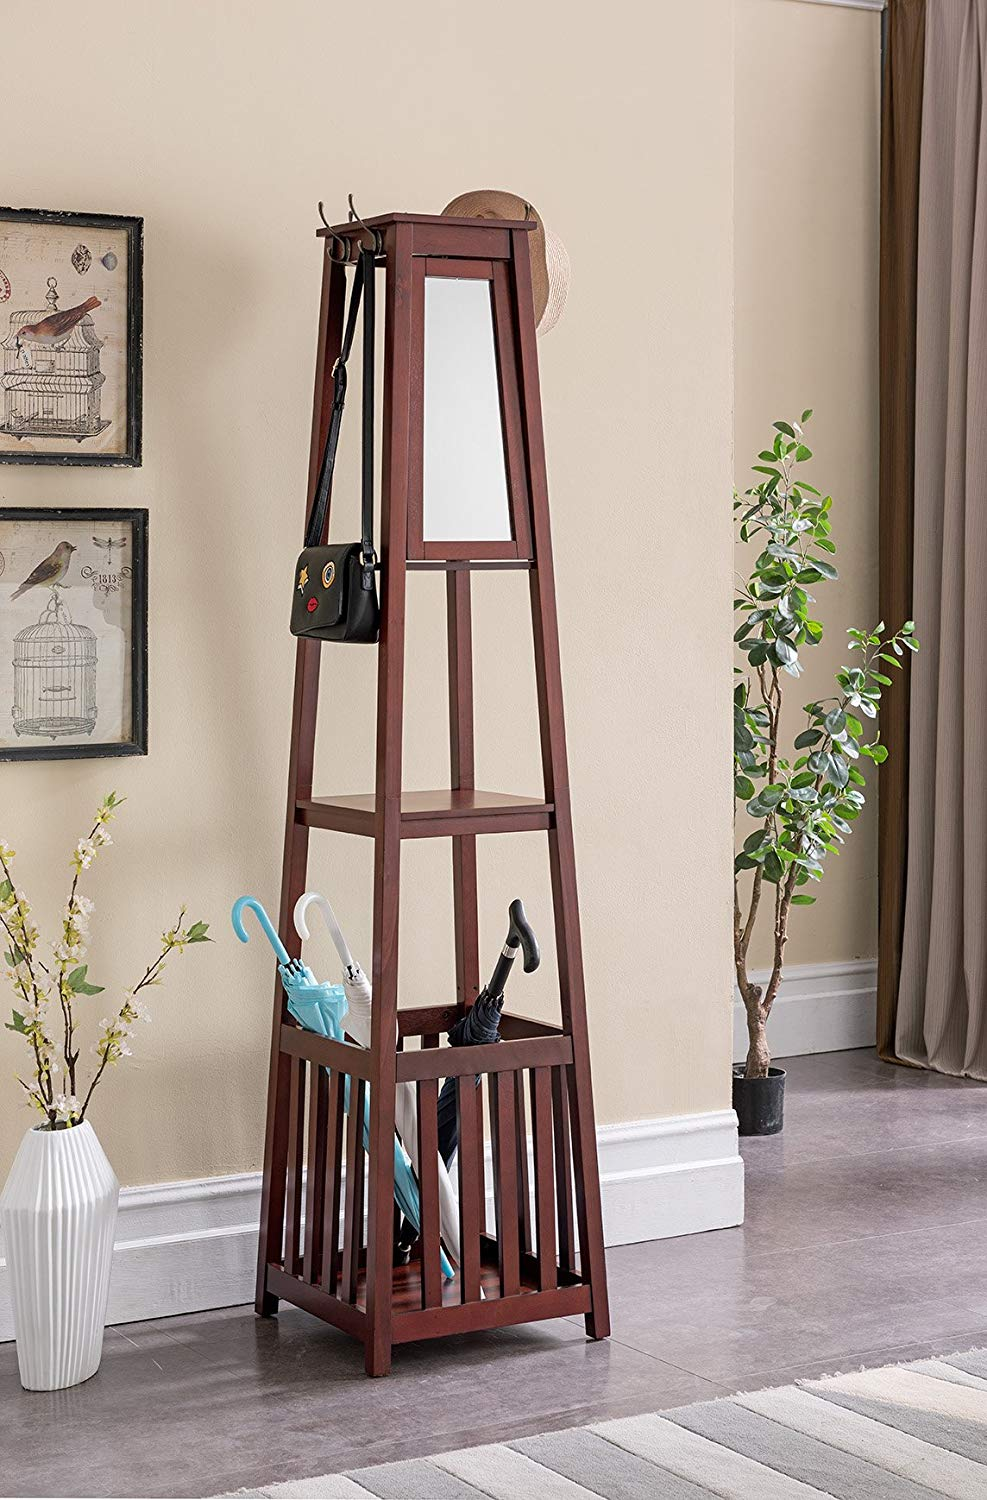 Walnut Kings Brand Furniture Entryway Hall Tree with Mirror Coat Hooks /& Storage Bench